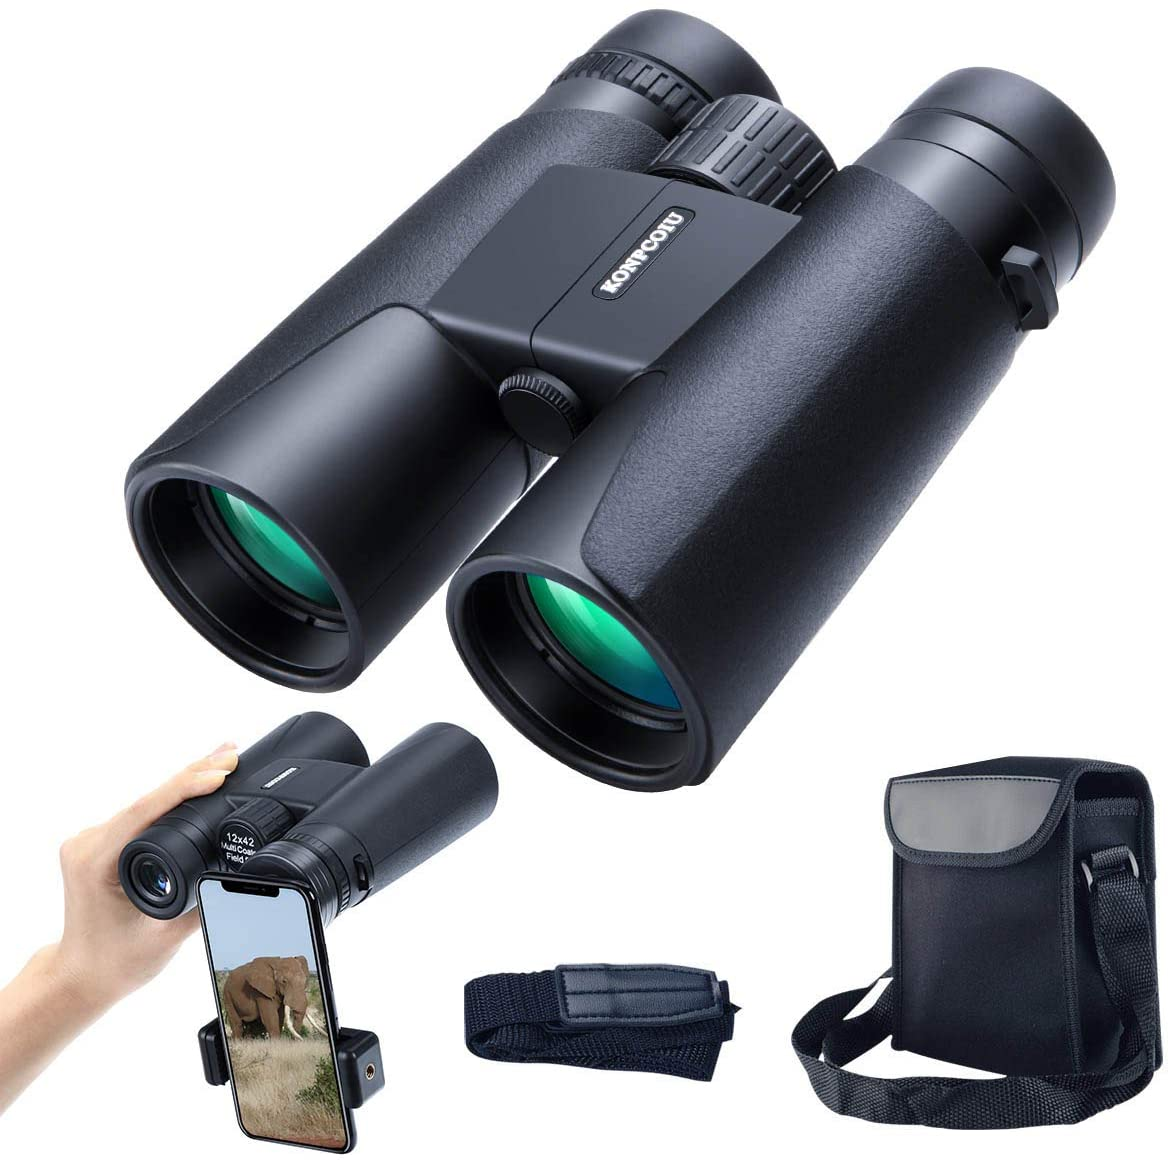 konpcoiu 12×42 Roof Prism Binoculars for Adults, Portable and Waterproof Compact Binoculars with Low Light Night Vision,BAK4 Prism FMC Lens HD Clear View for Bird Watching, Hunting, Travel, Concerts